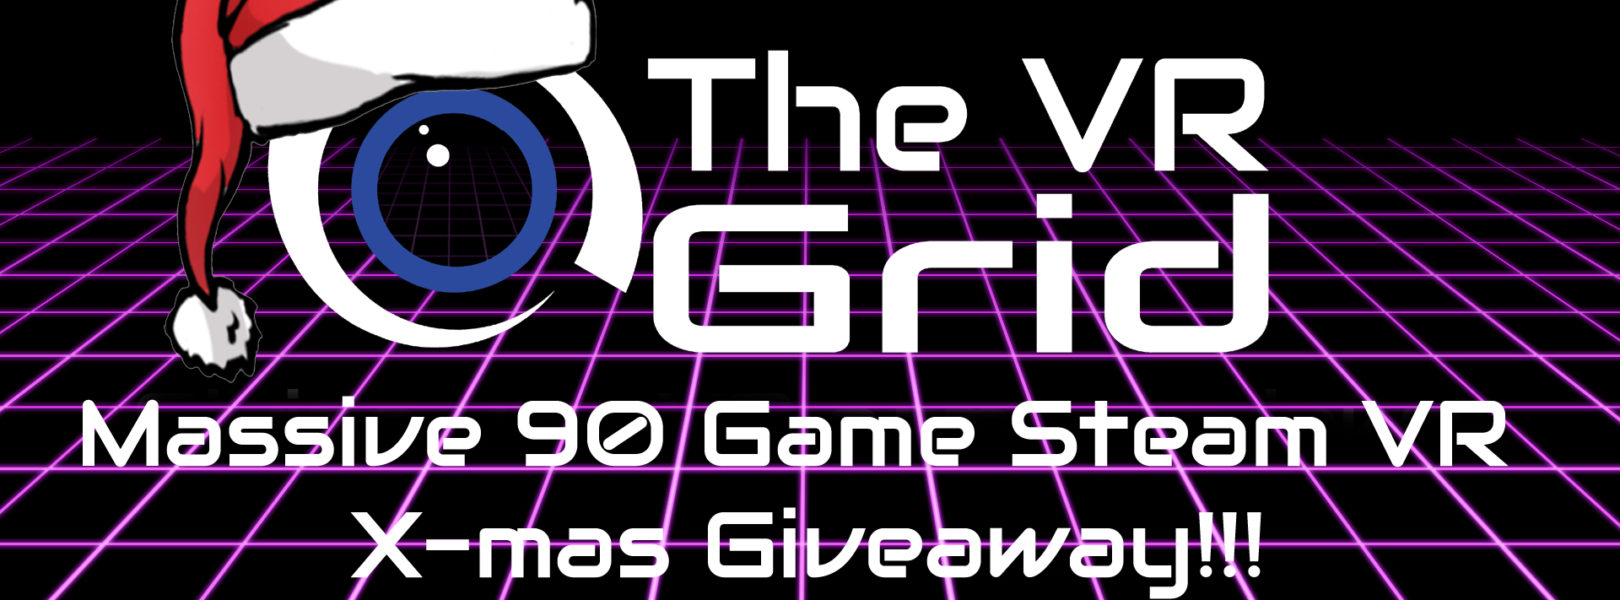 free games Archives - THE VR GRID